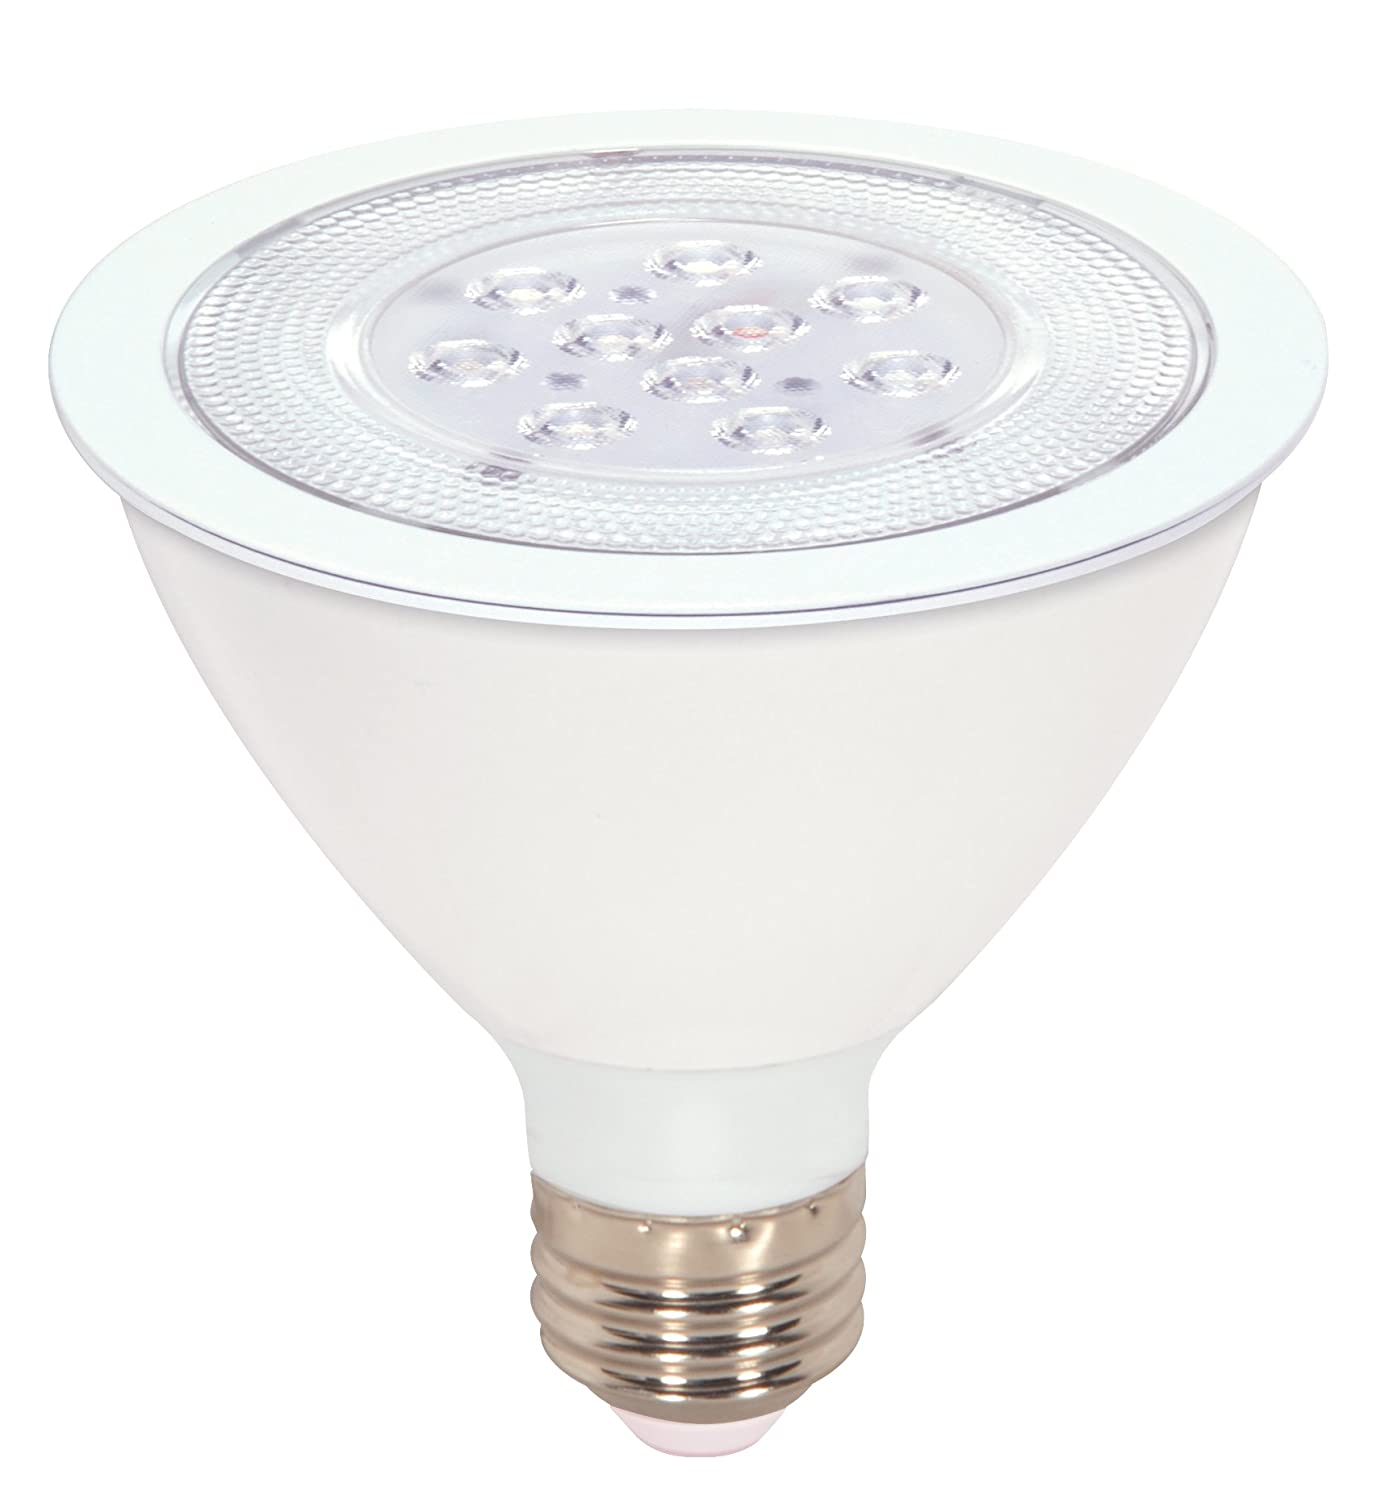 lumen led bulbs bulb vintage light products electric can dimmable decorative feit